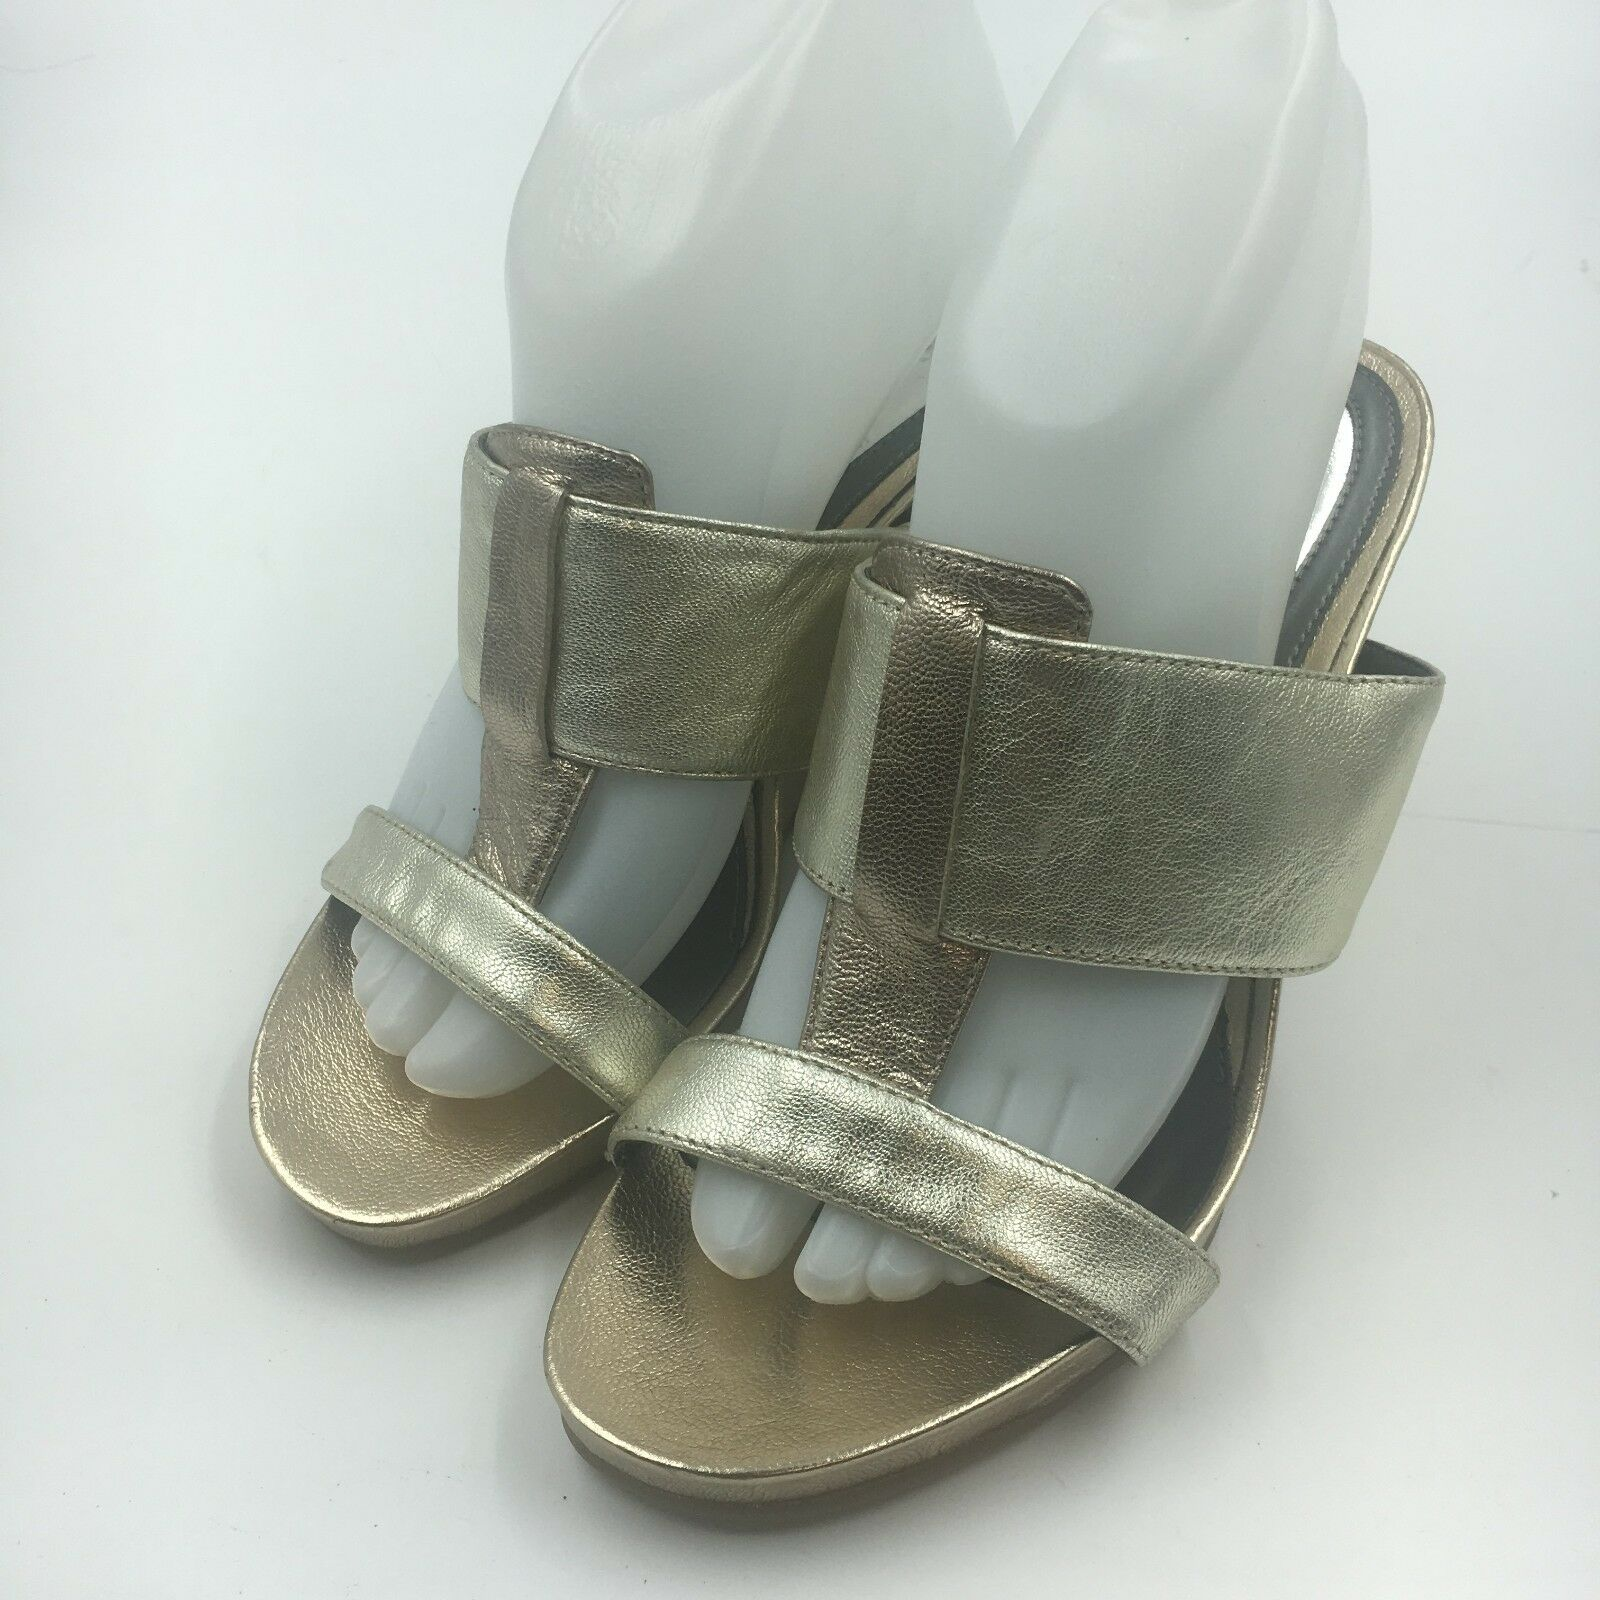 Alfani Size NEW Gold Rose Plymouth Women's Shoes Size Alfani 8M Slides Wedges Sandals c4dff1